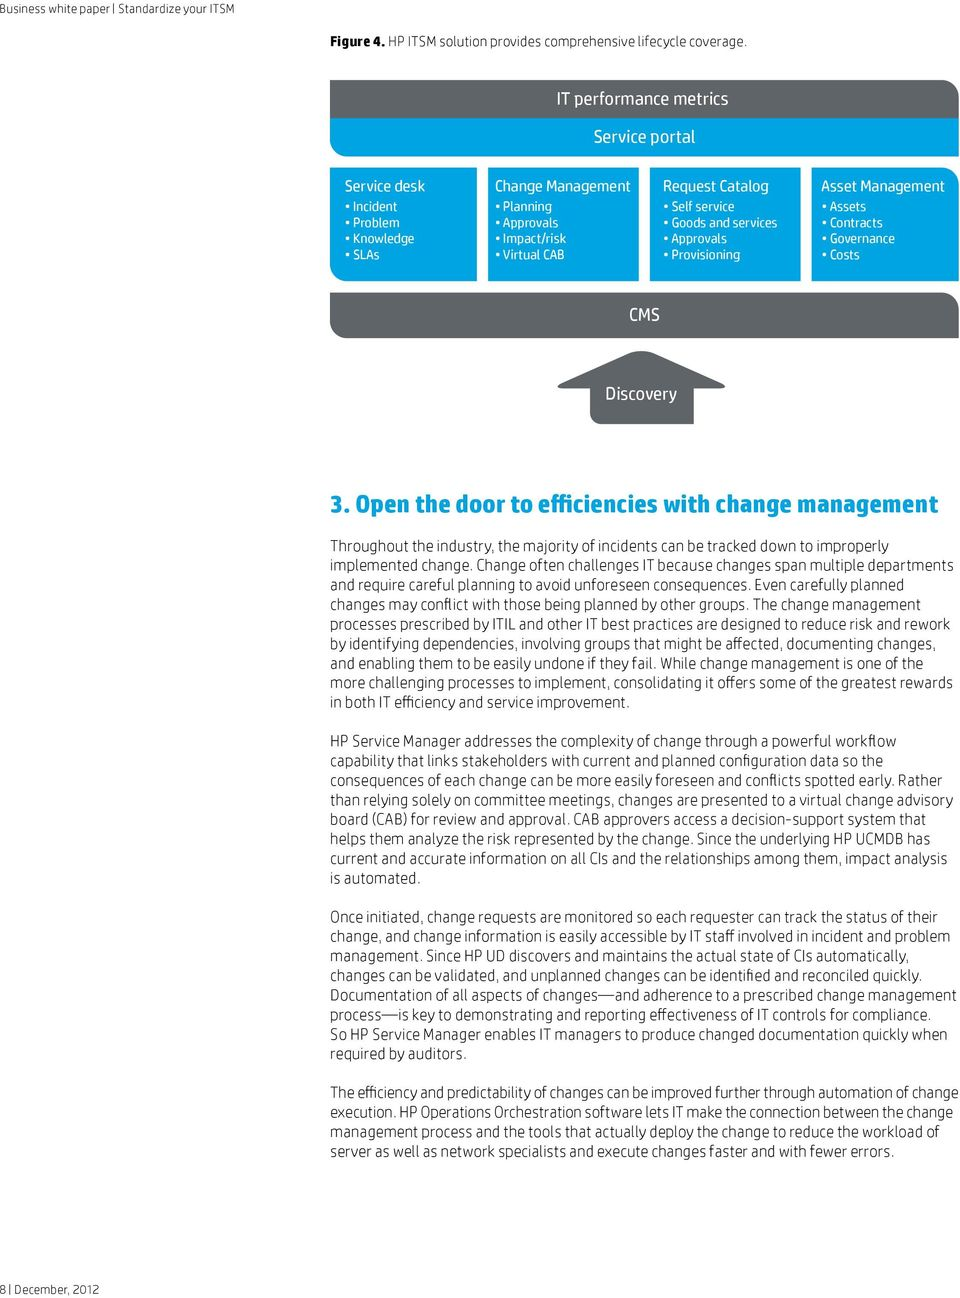 Approvals Provisioning Asset Management Assets Contracts Governance Costs CMS Discovery 3.